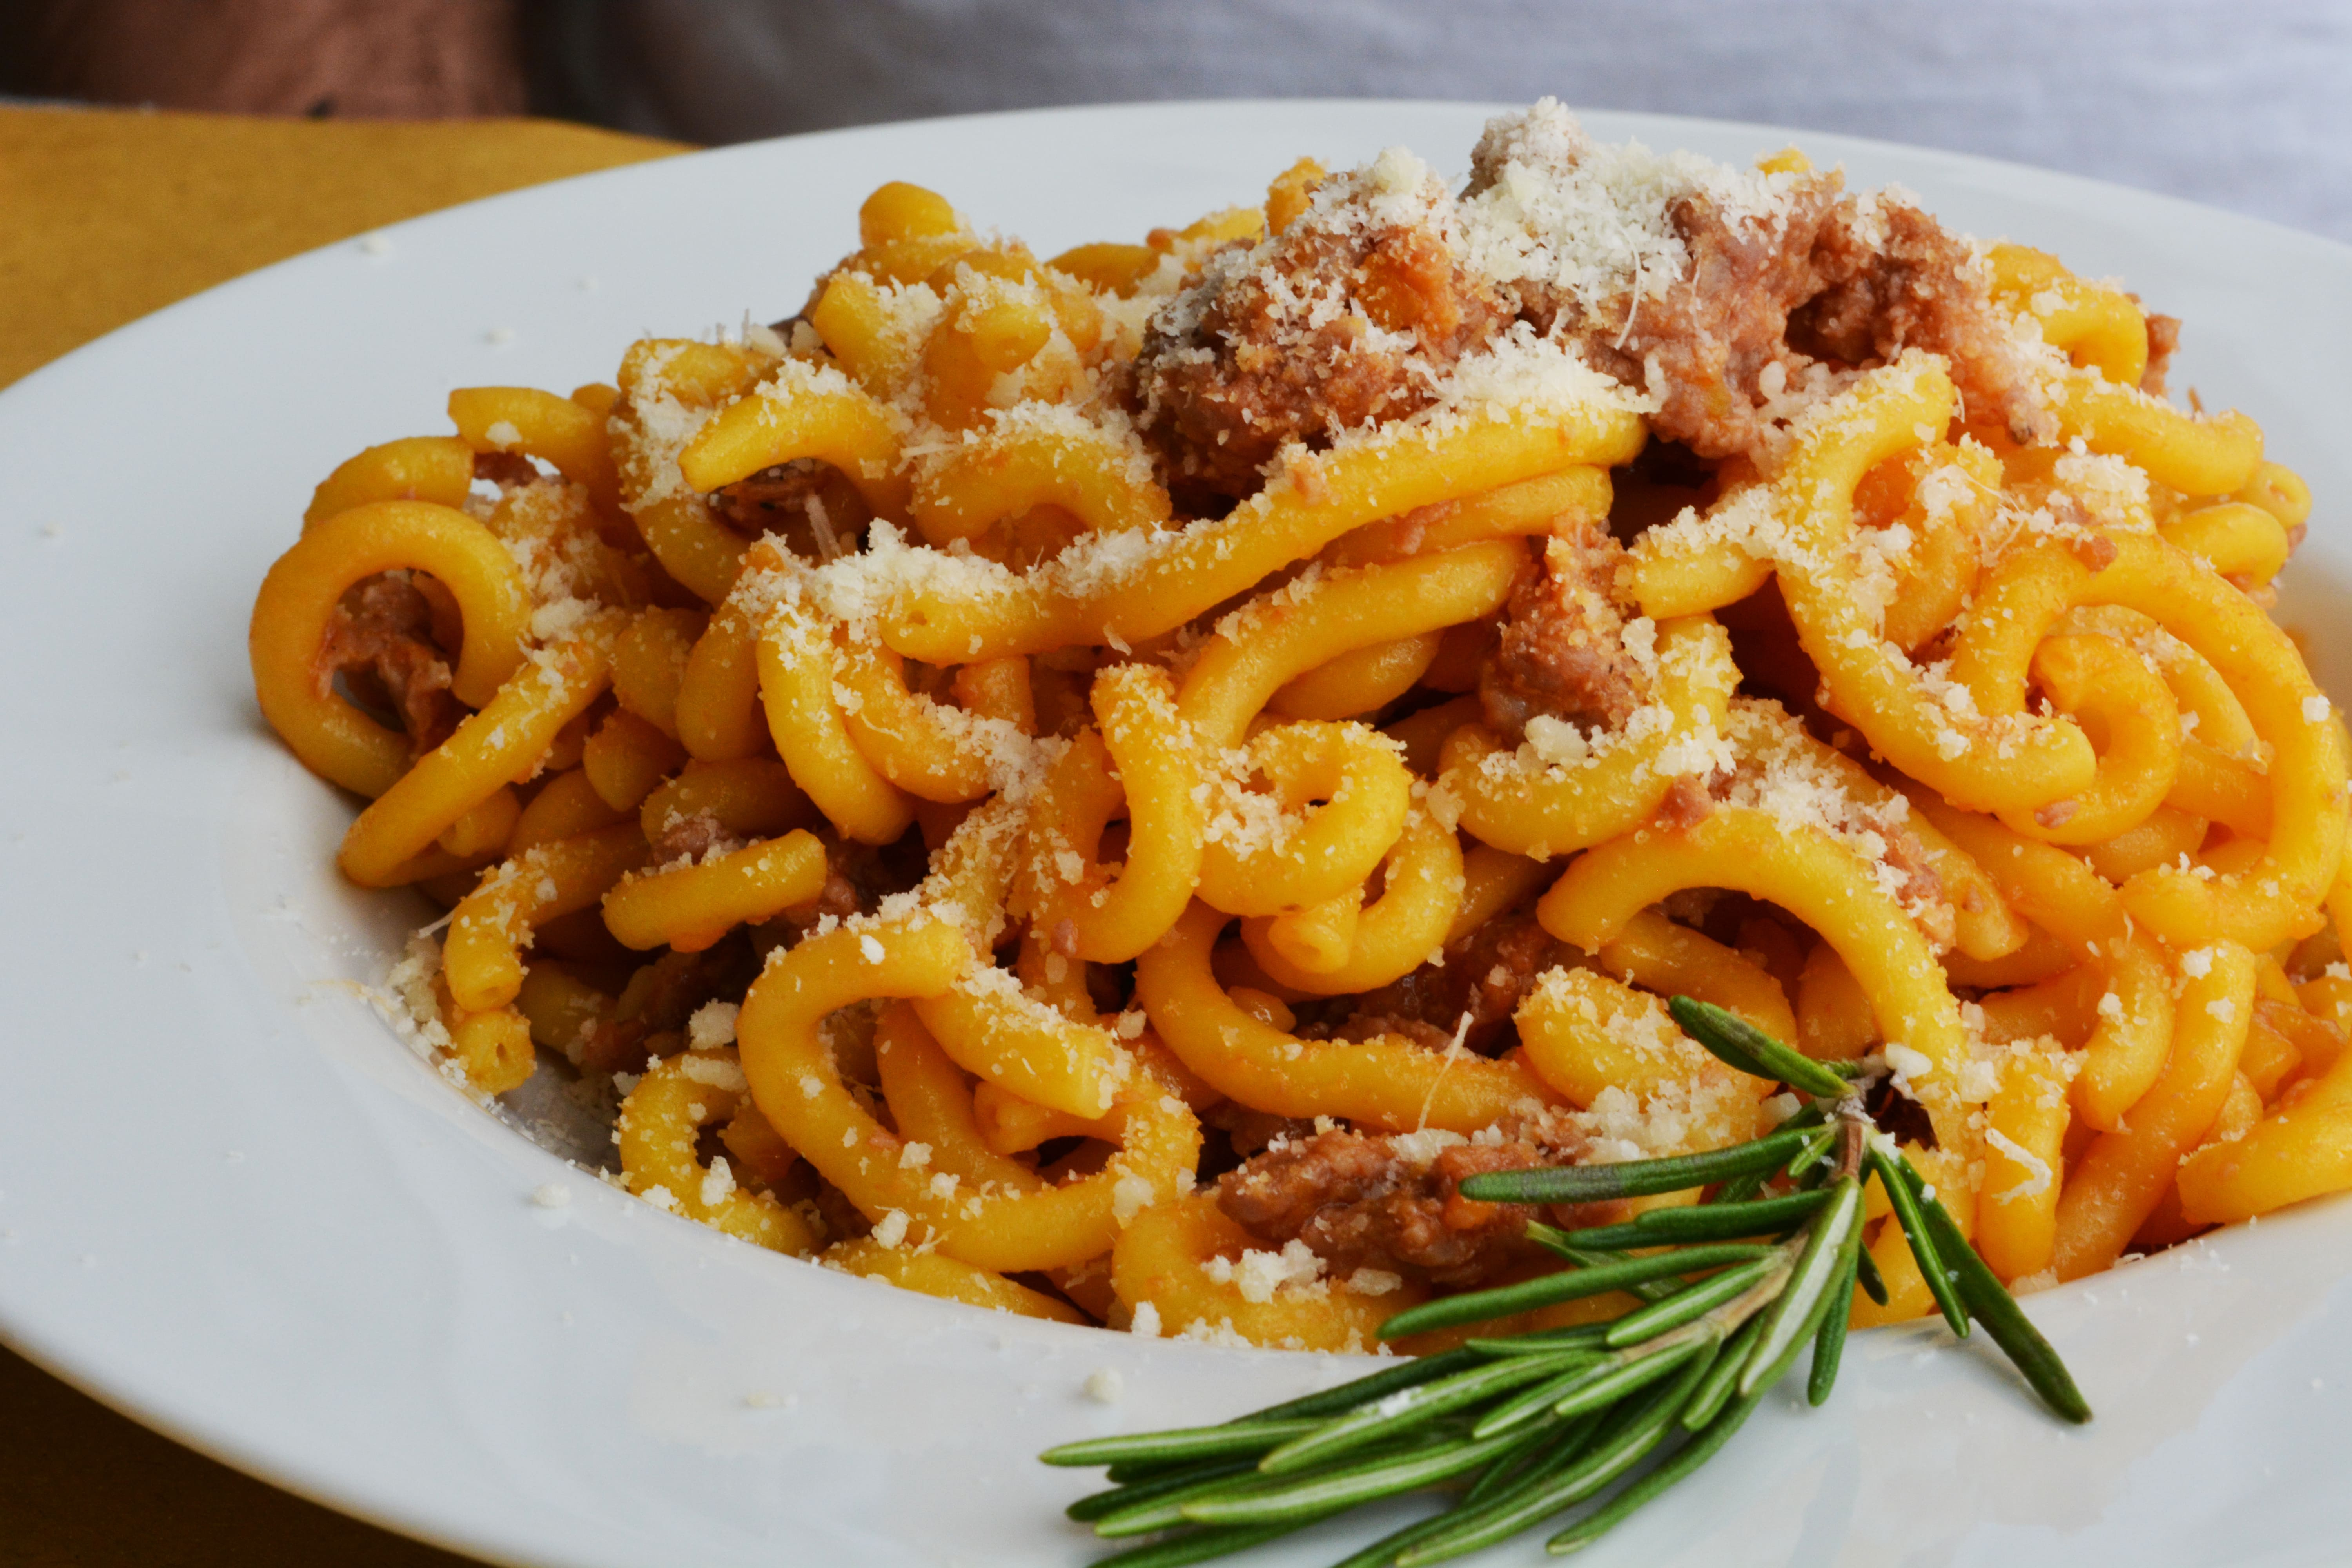 Bologna is a great place to visit in Italy for pasta, especially at Trattoria Anna Maria